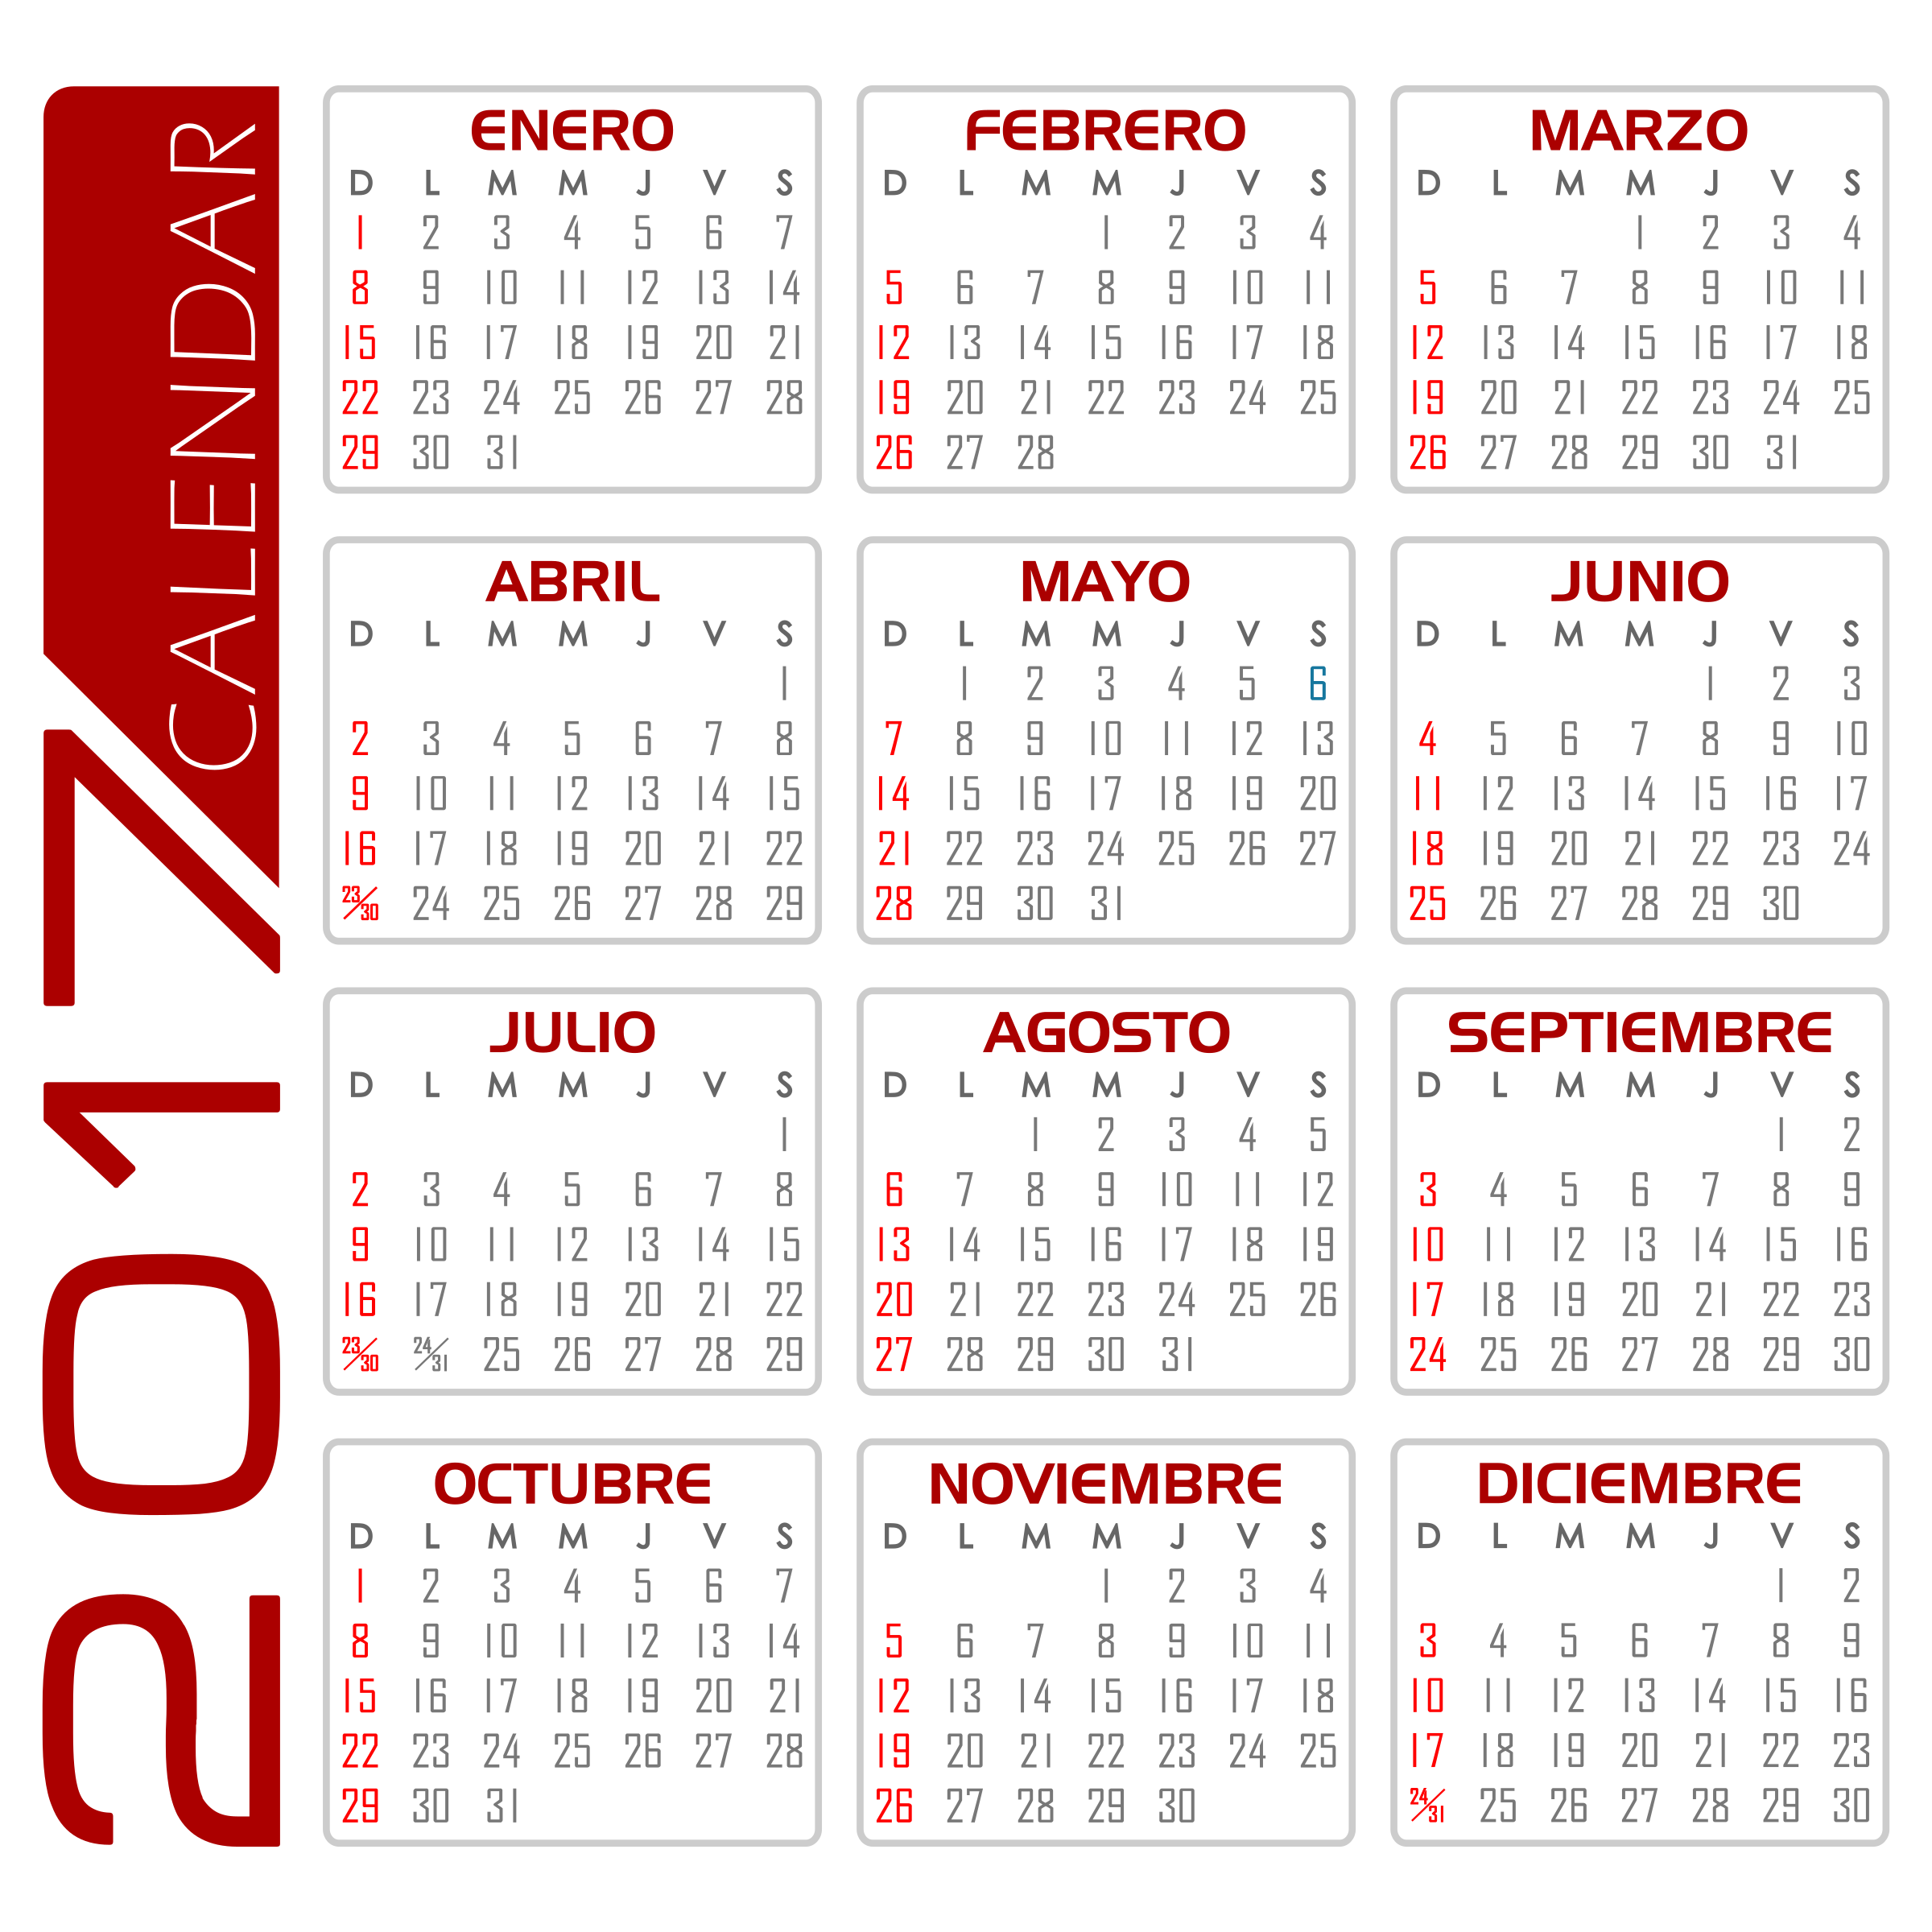 Calendario 2017 – Español (Blanco y Rojo) by DG-RA